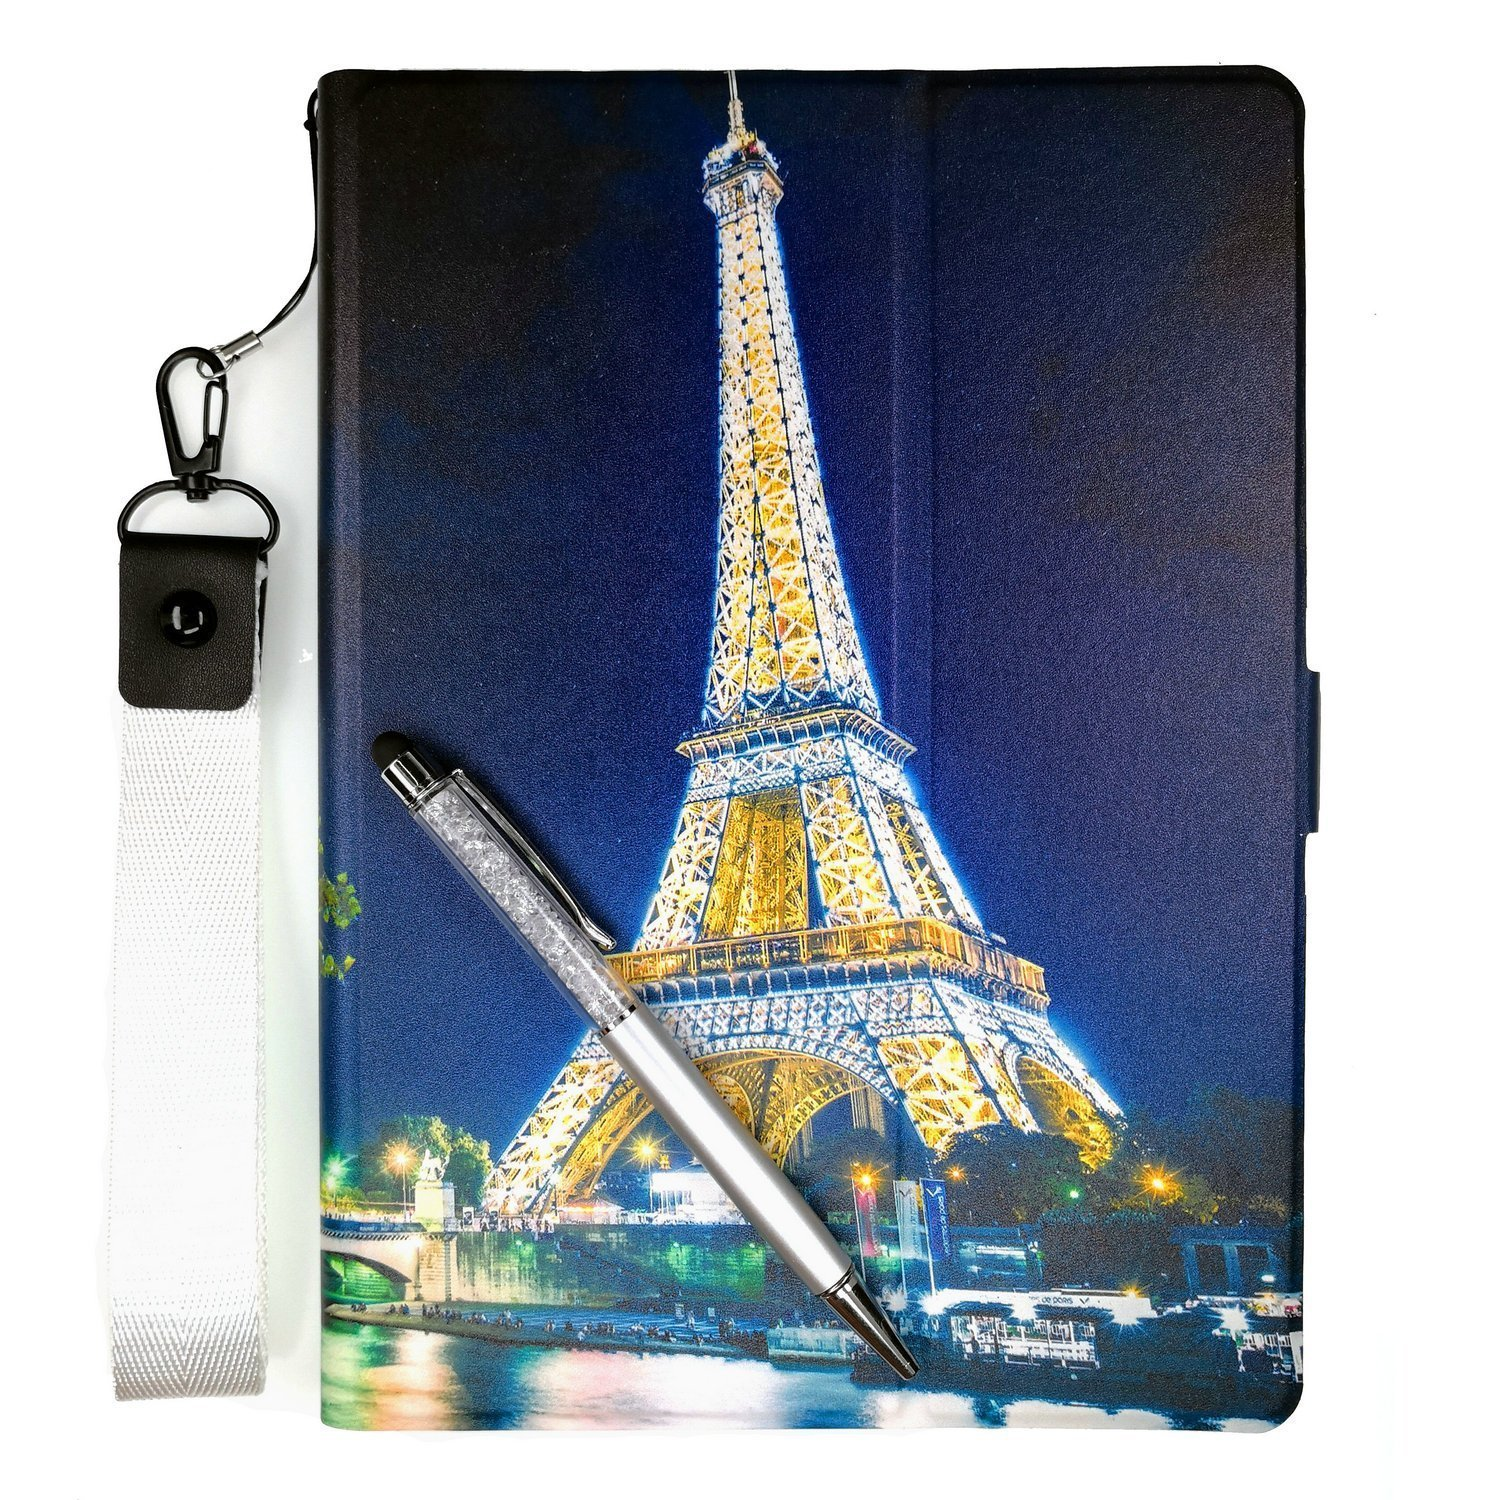 Lovewlb Tablet Case for RCA Pro 12.2 Case Stand Leather Cover SN